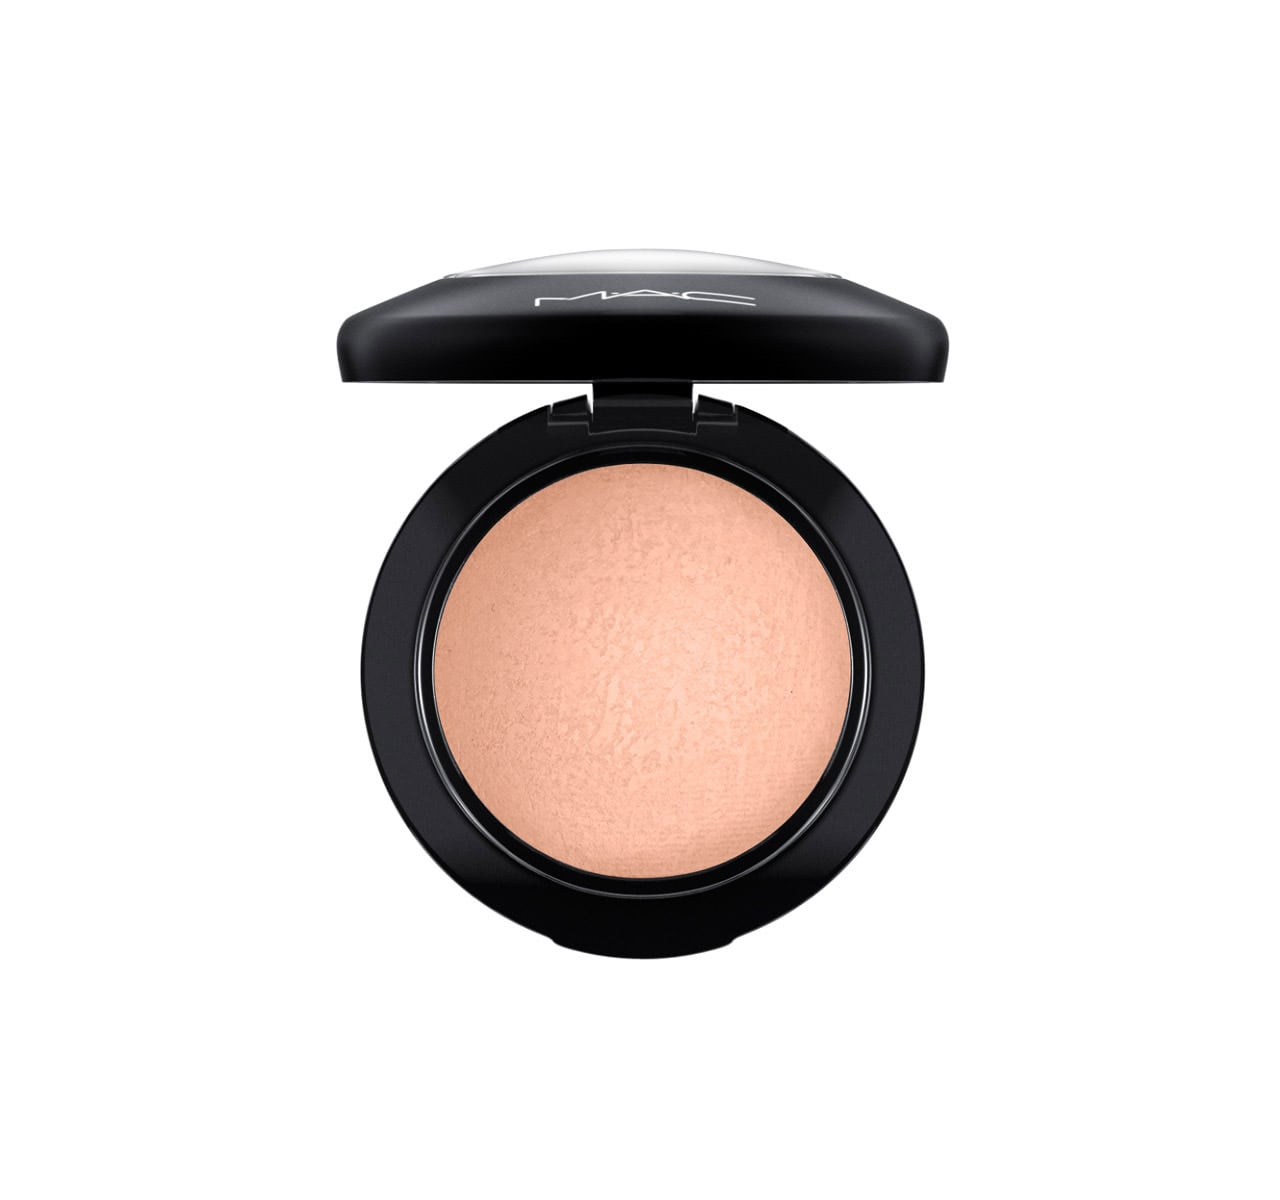 Check for MAC Cosmetics' promo code exclusions. MAC Cosmetics promo codes sometimes have exceptions on certain categories or brands. Look for the blue